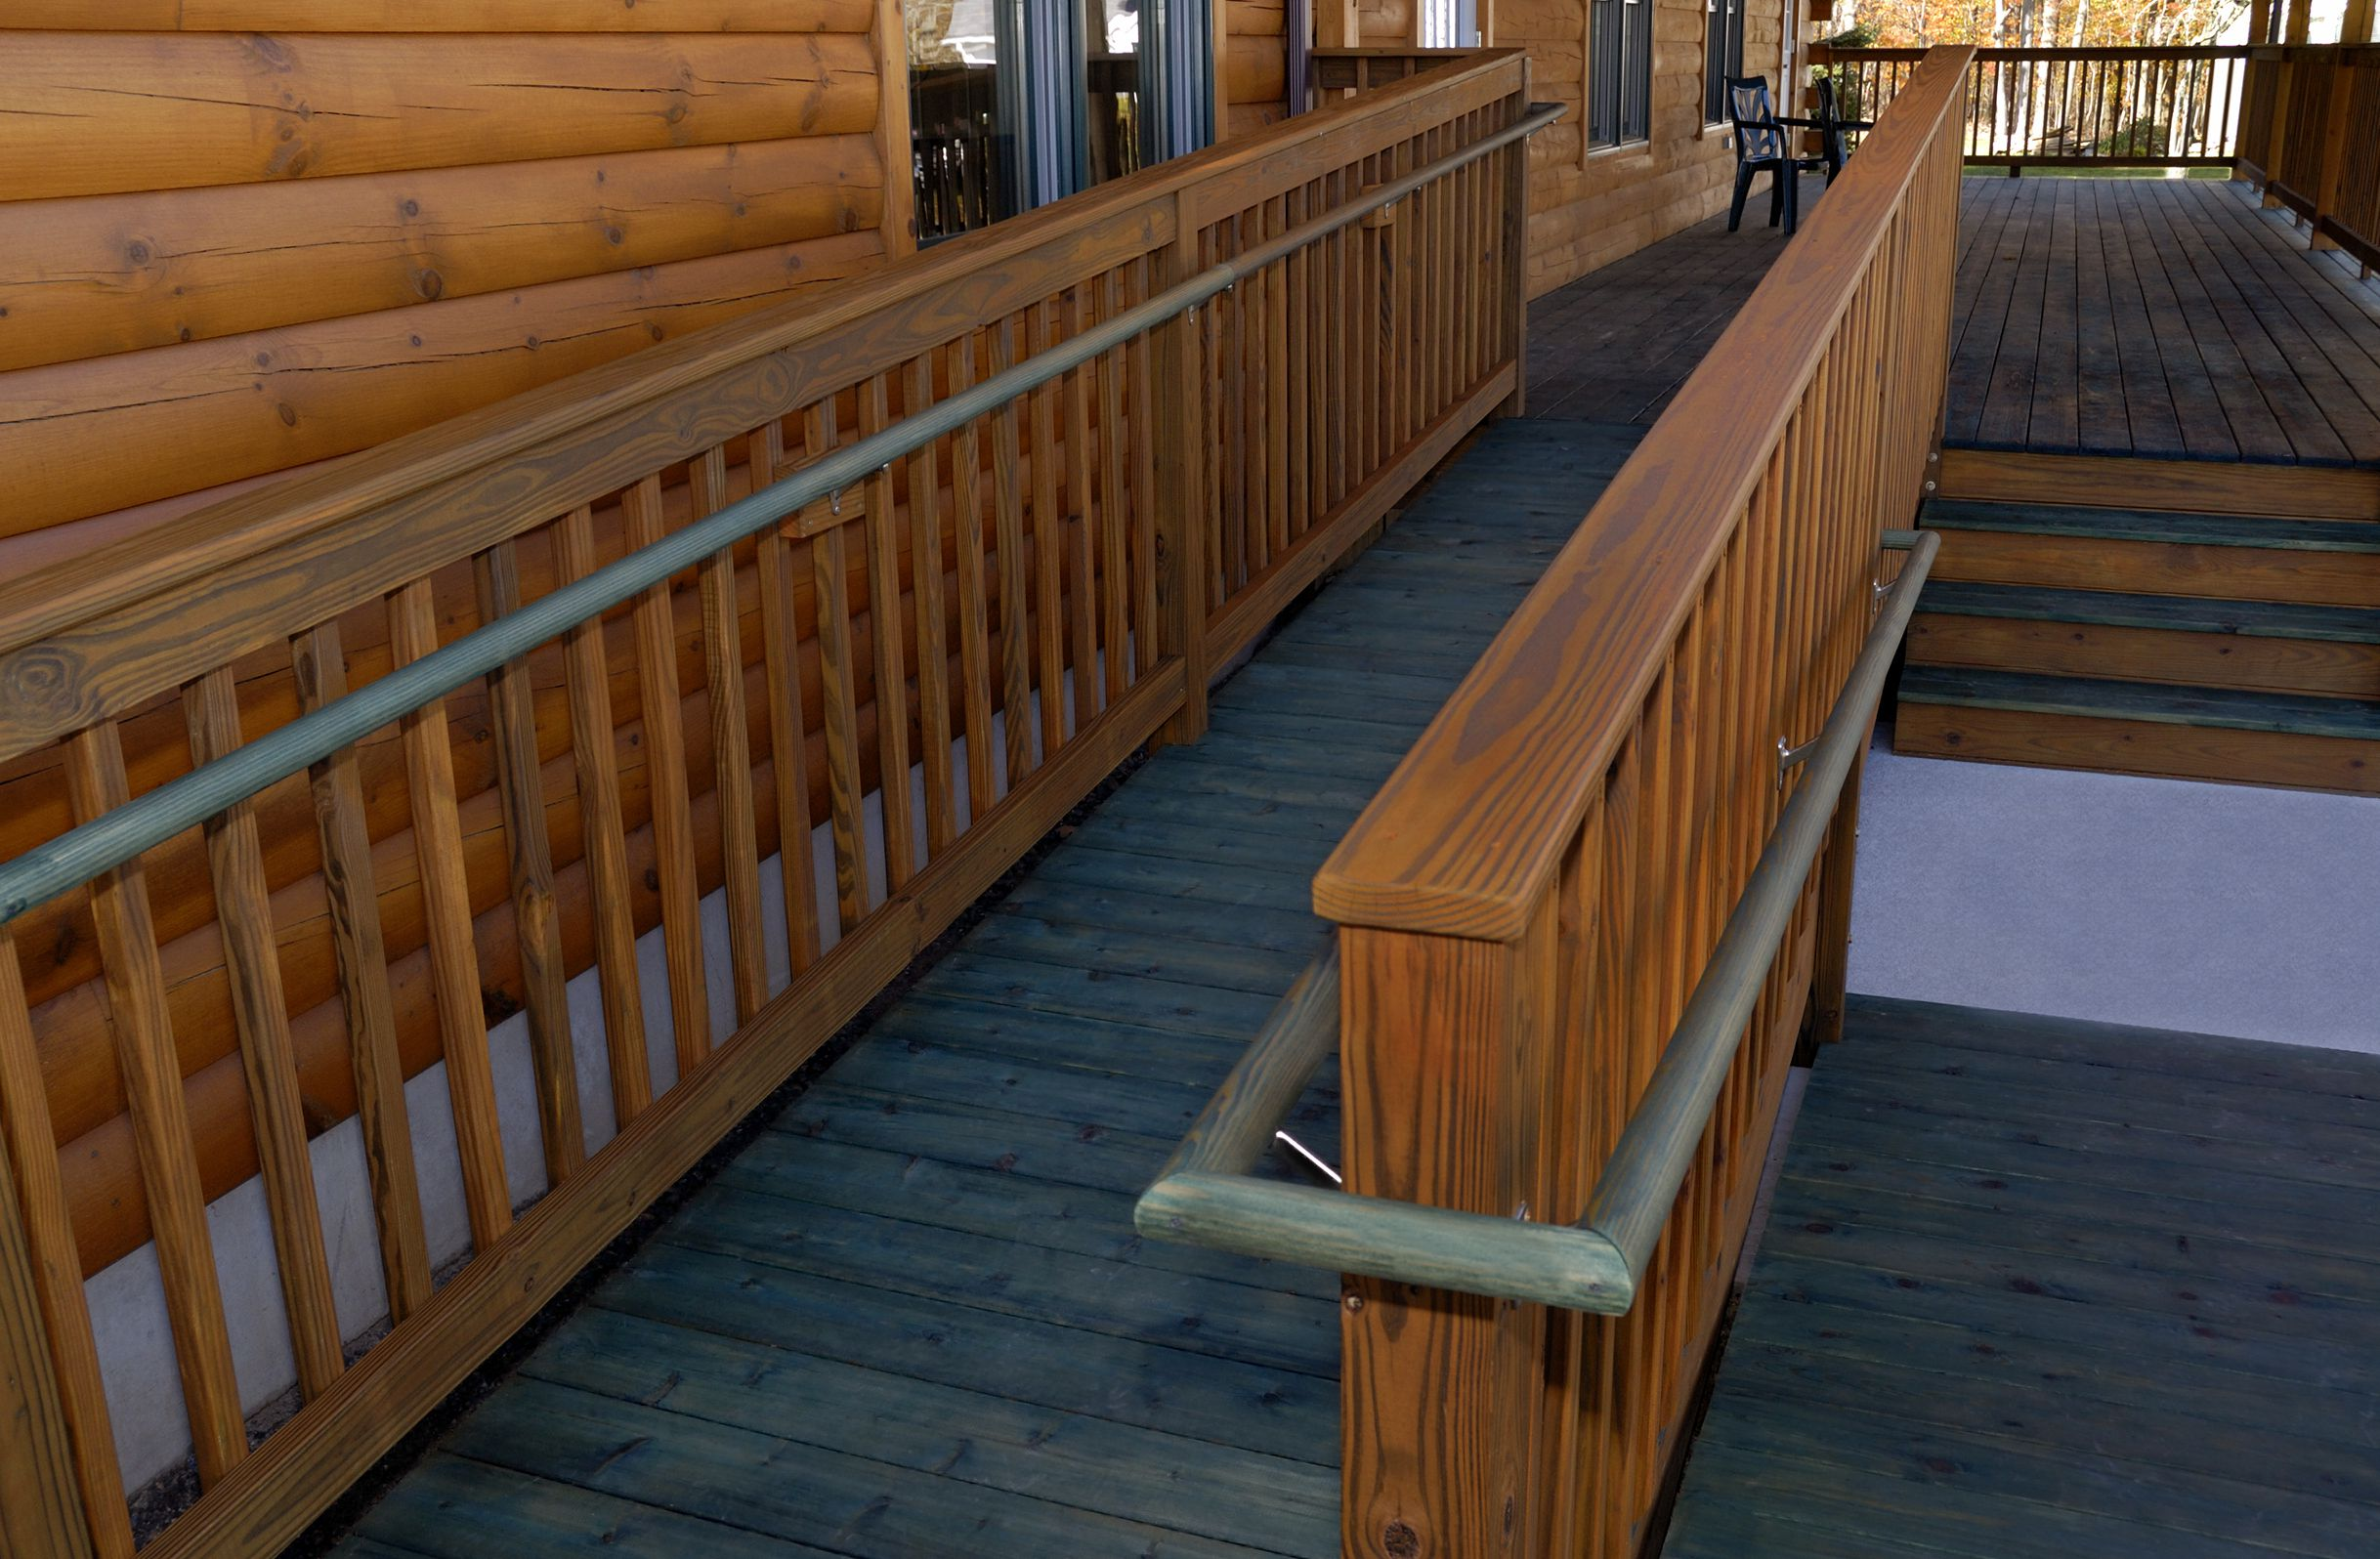 Ada Wheelchair Ramp Requirements